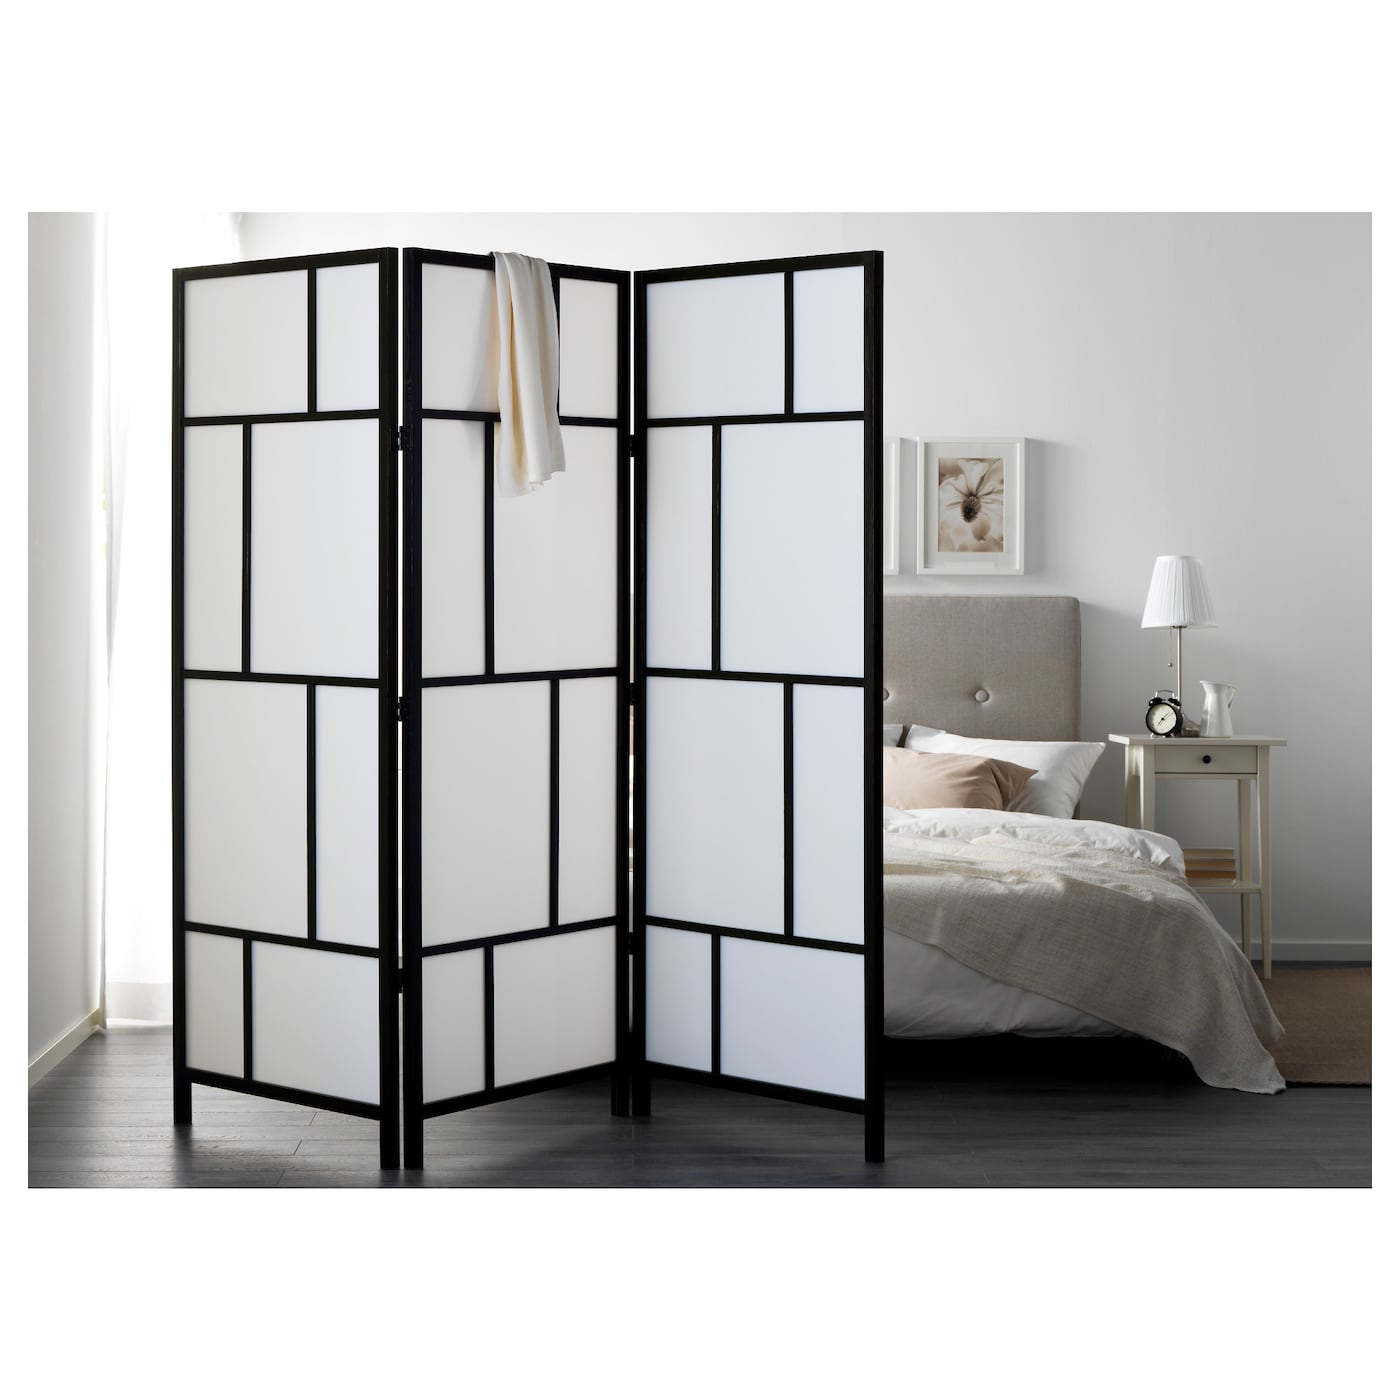 "RISÖR Room divider - white/black 10x10 10/10 "" (10x110 cm)"